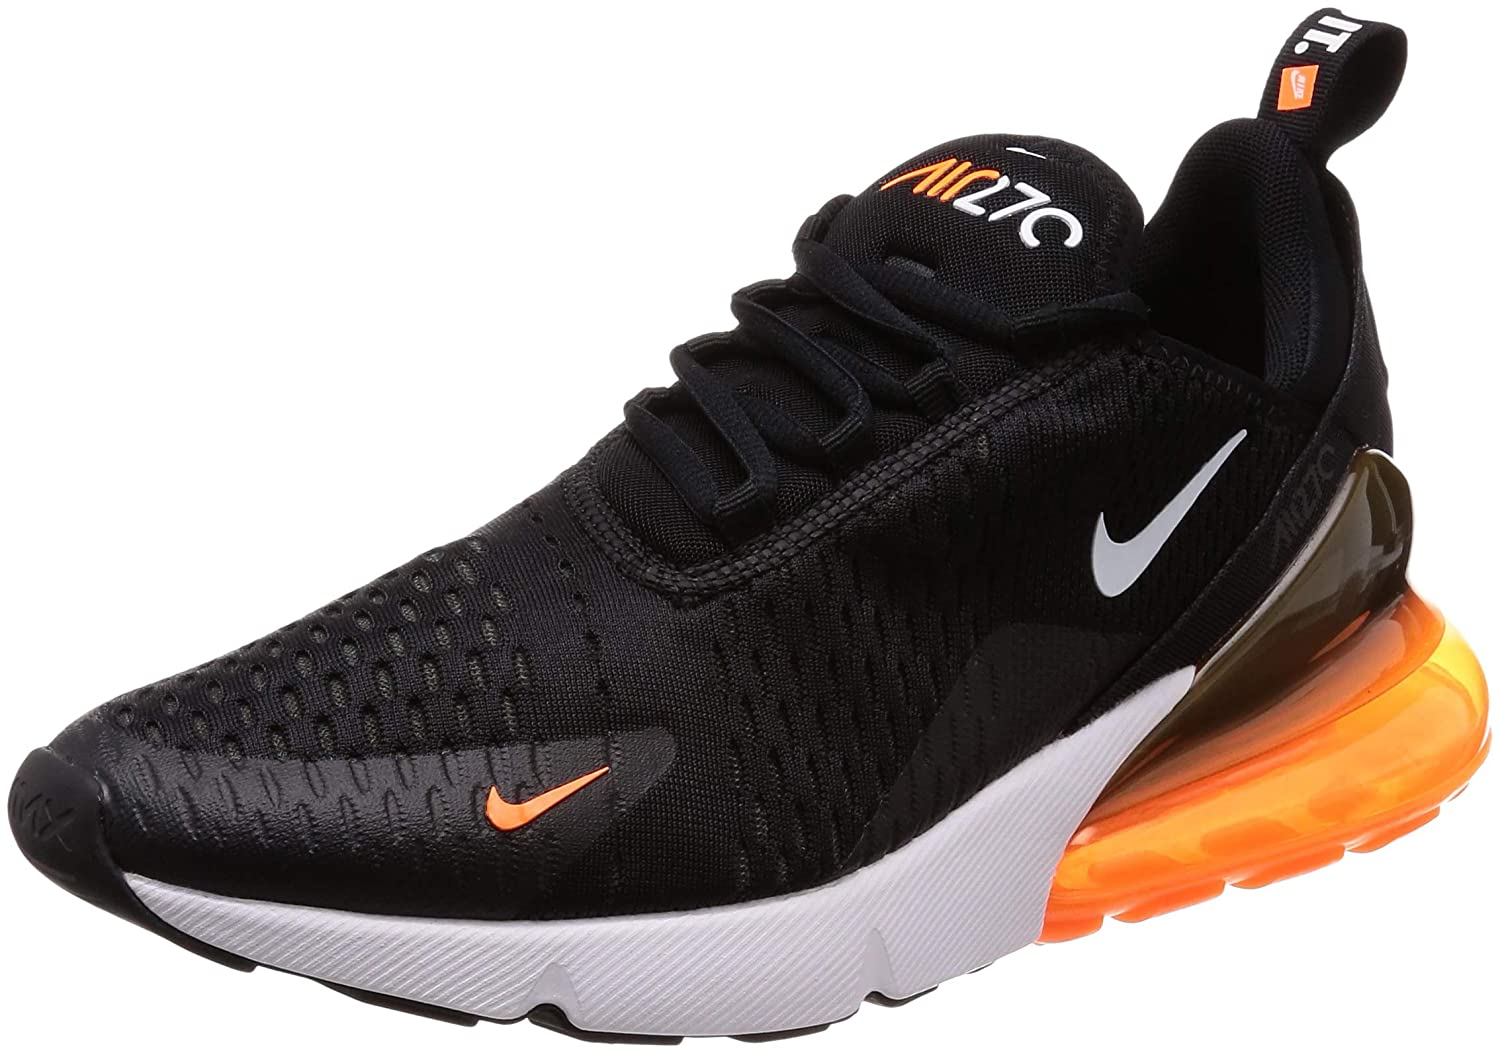 NIKE Air Max 270, 270, 270, Chaussures de Running Compétition Homme 41 EU|Multicolore (Black/White/Total Orange) 9d9f90